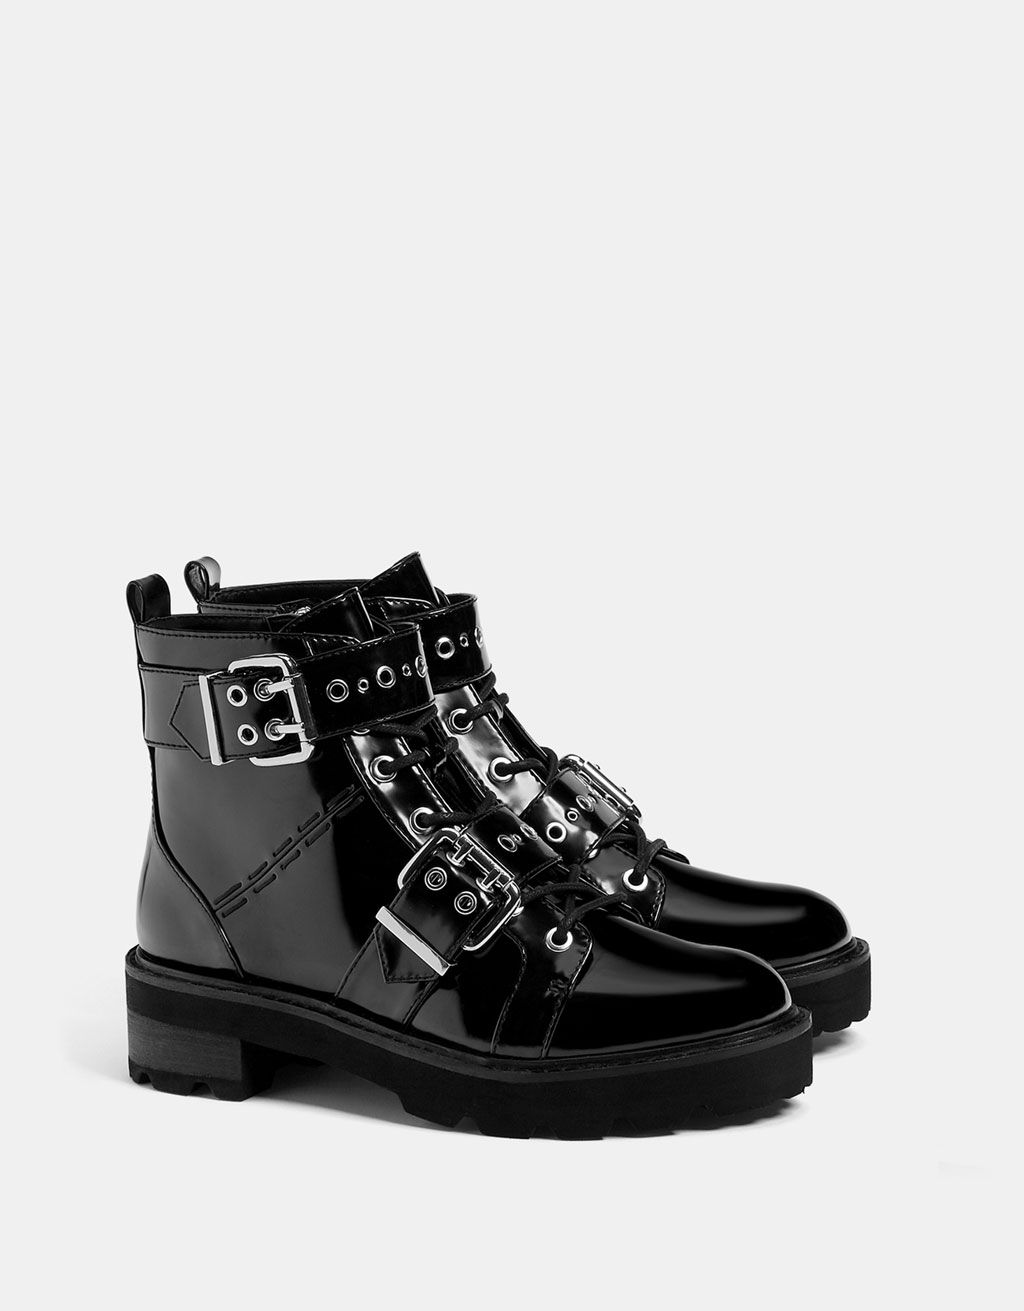 132ab6a7a89 Bershka Serbia - Biker ankle boots with buckles and studs